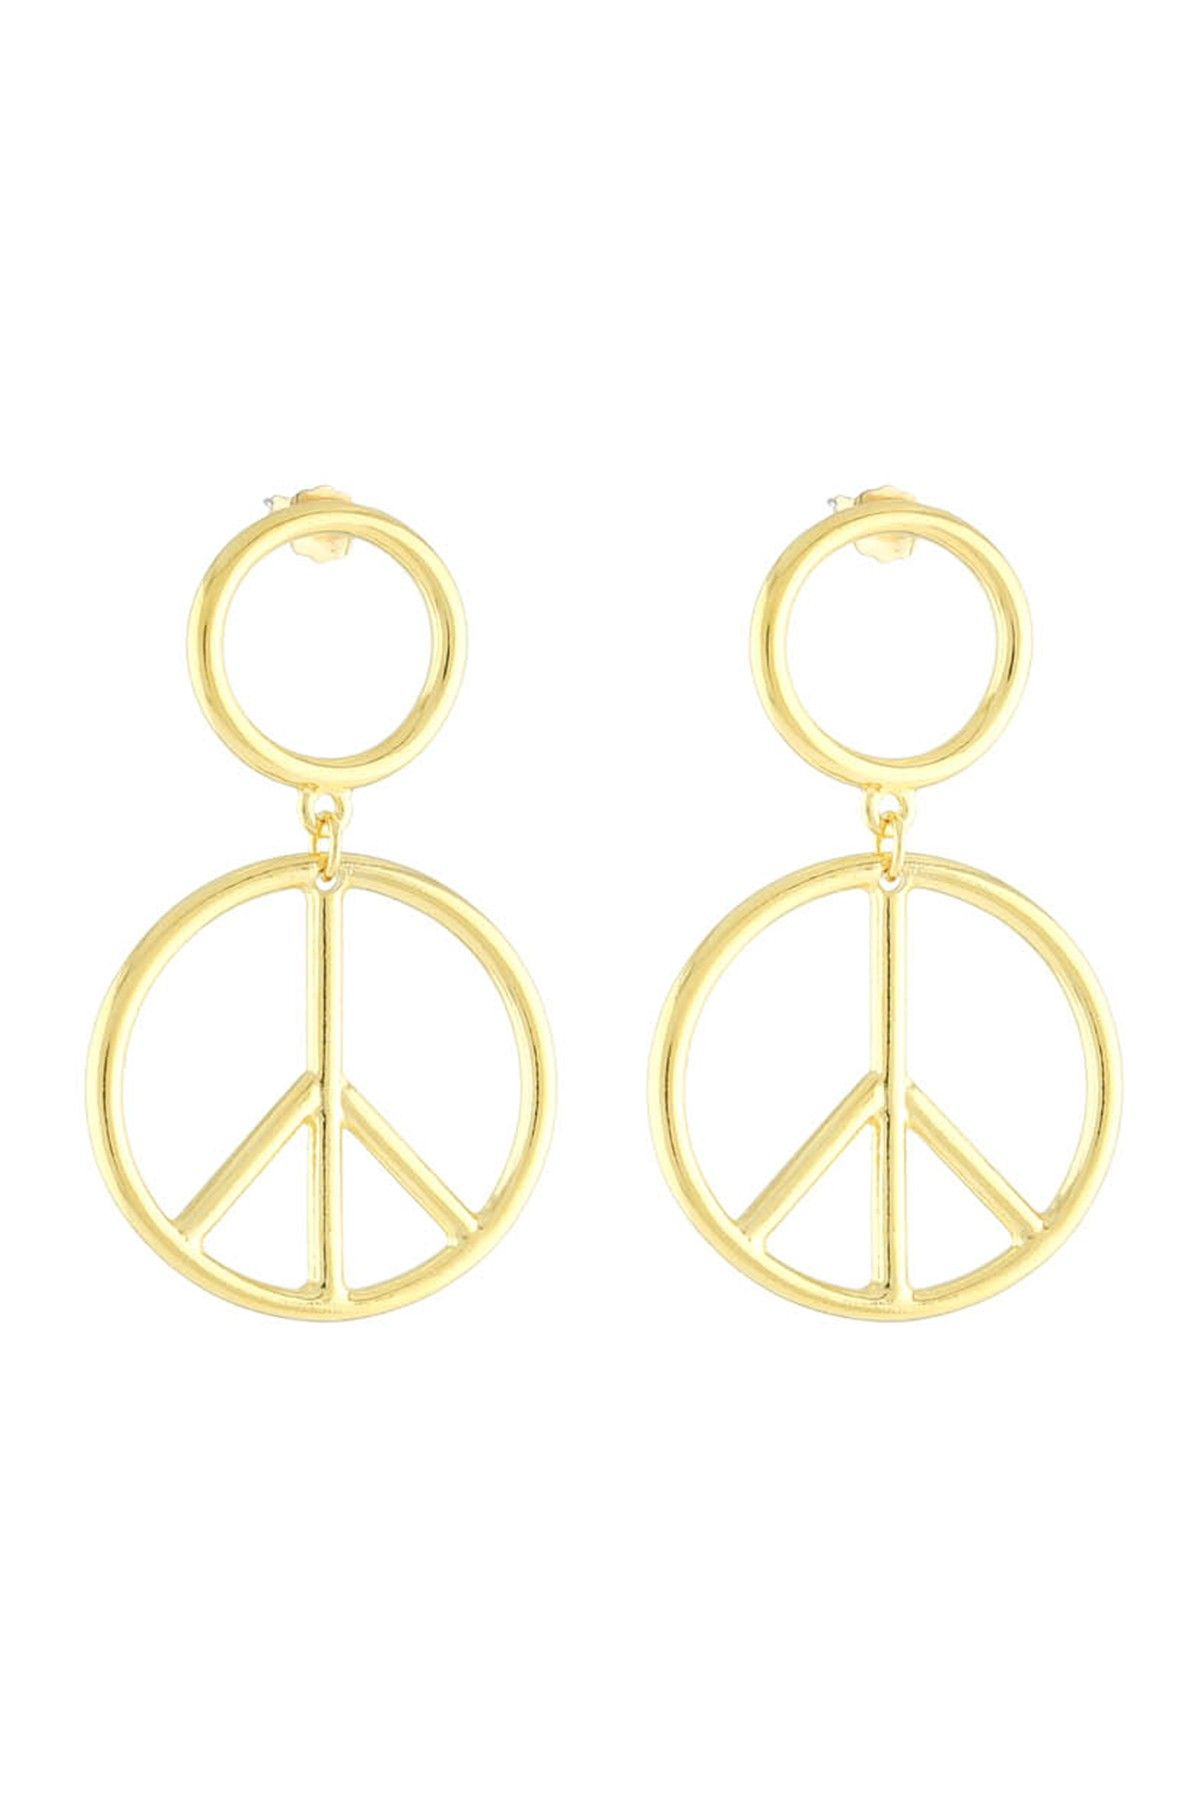 a28f098b6 Vanessa Mooney The Young Love Yellow Gold Plated Peace Sign Dangle Earrings